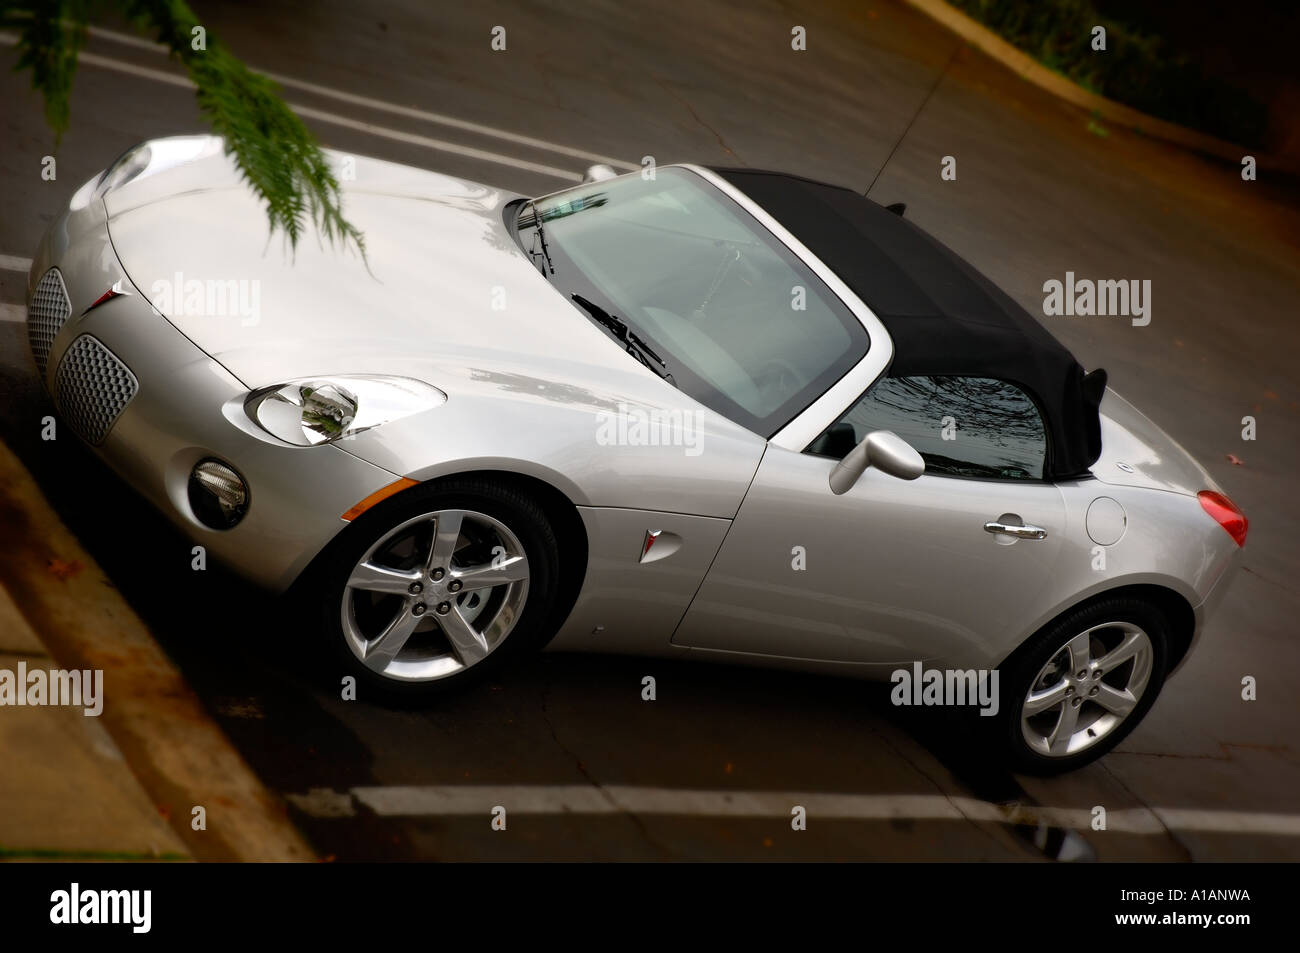 Brand new 2006 Pontiac Solstice. The Solstice is the only American roadster priced under 20,000 UDS. - Stock Image